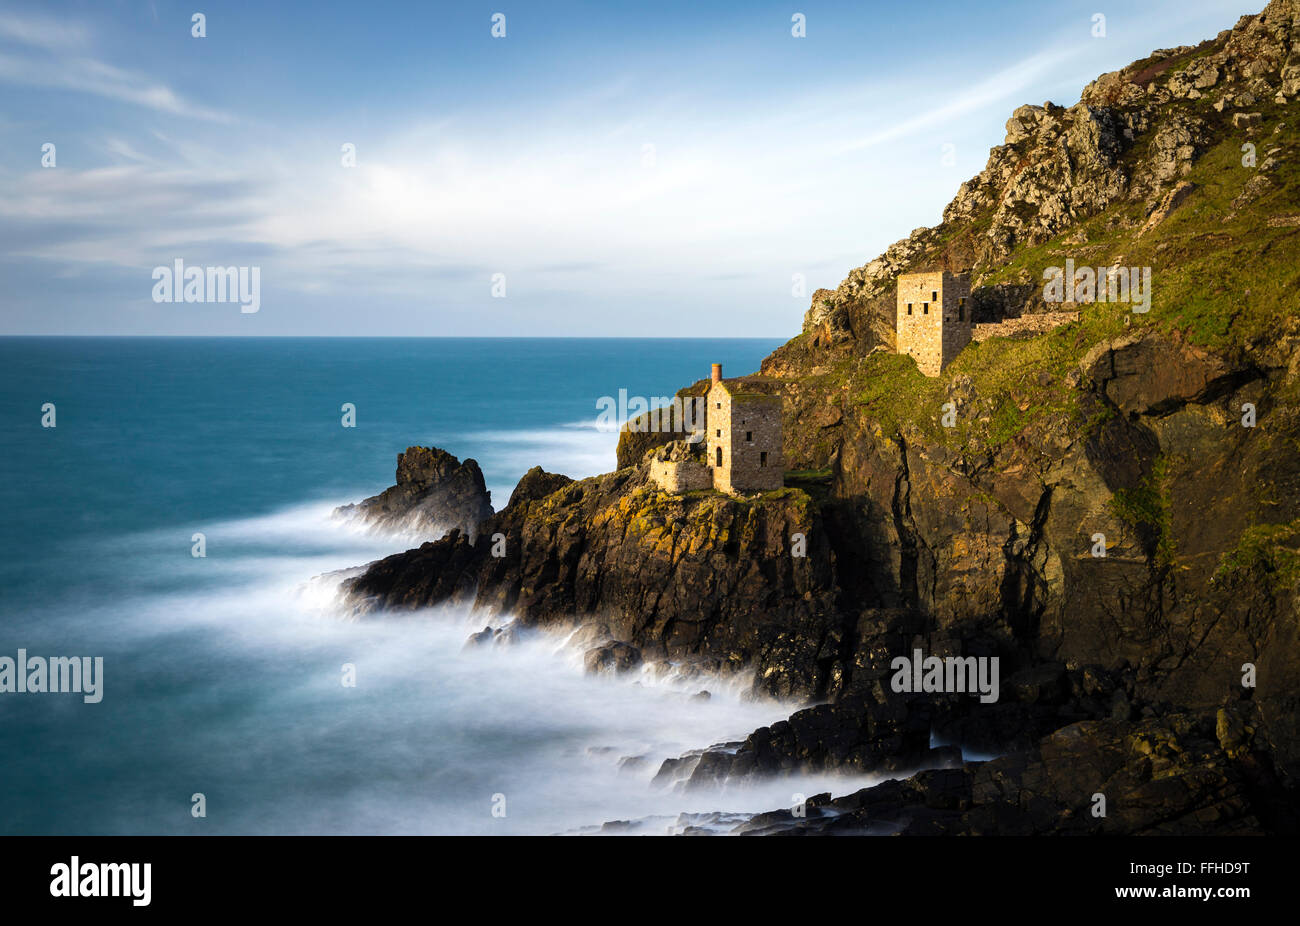 The Crown Mines at Botallack, Cornwall. - Stock Image